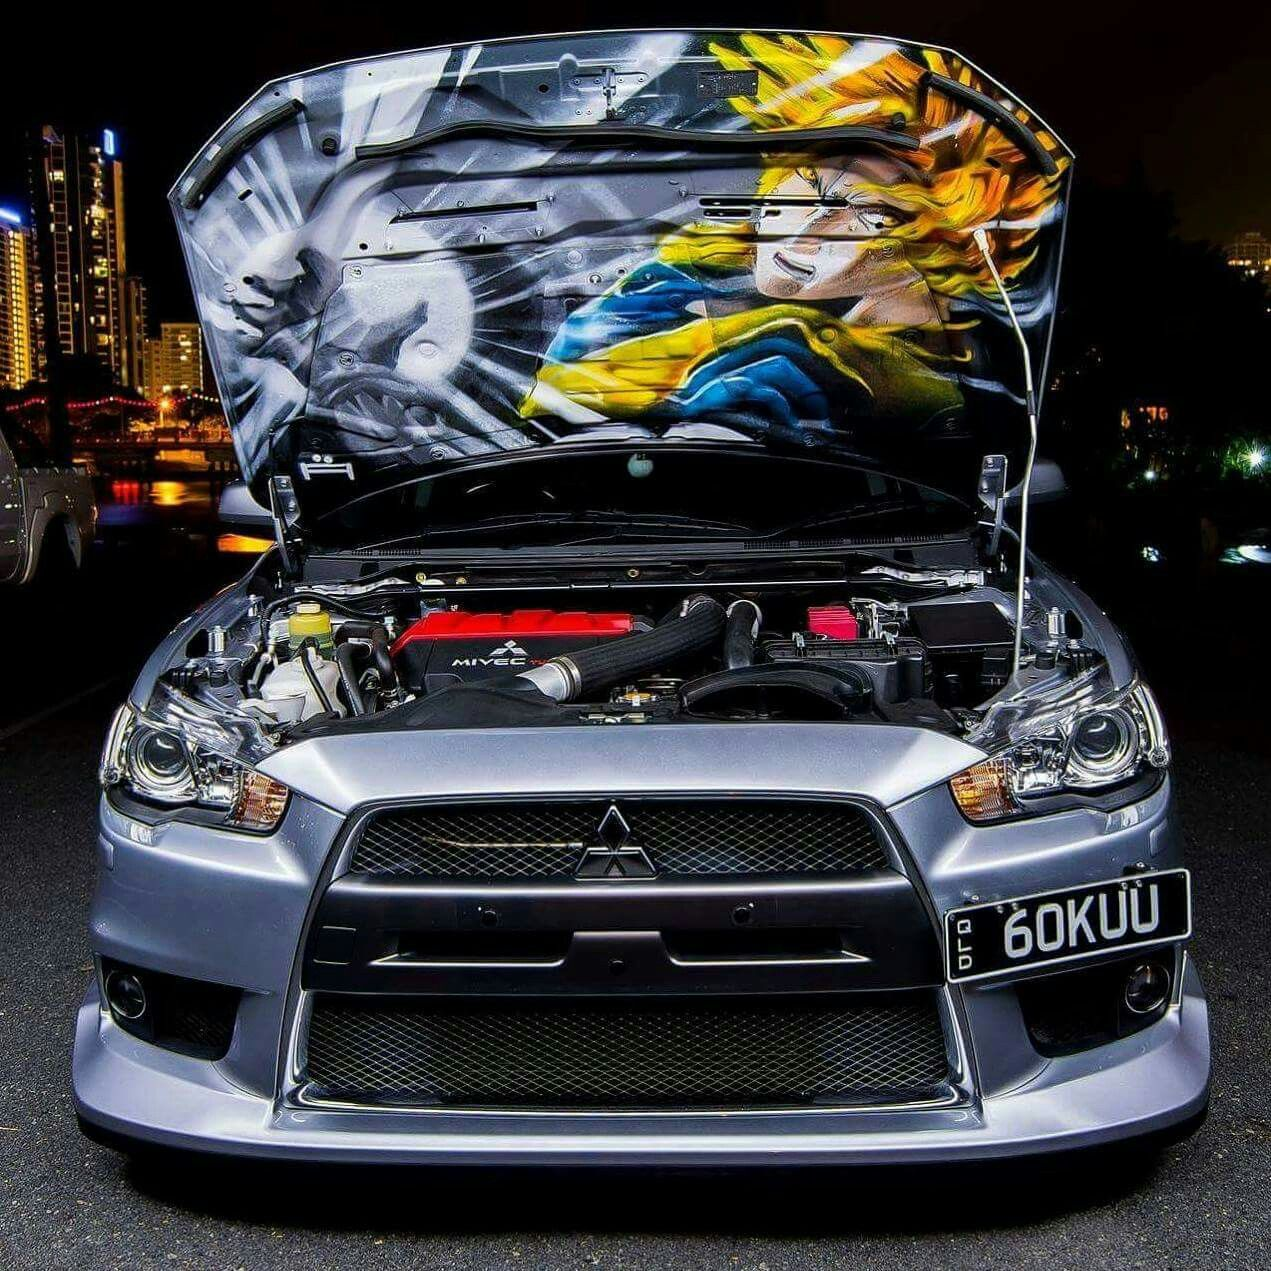 Mitsubishi Sports Car List: Goku Mitsubishi Lancer Evo X